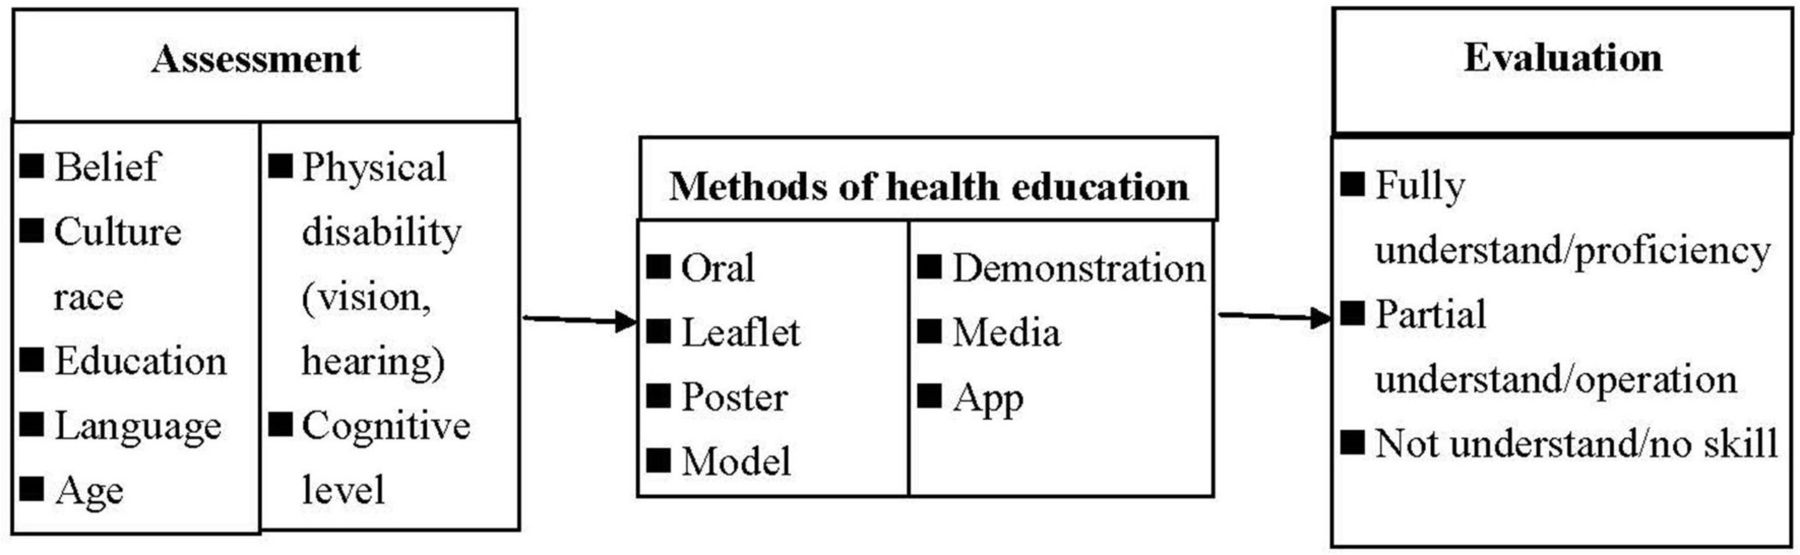 Electronic Health Records >> Effectiveness of a computerised system of patient education in clinical practice: a longitudinal ...